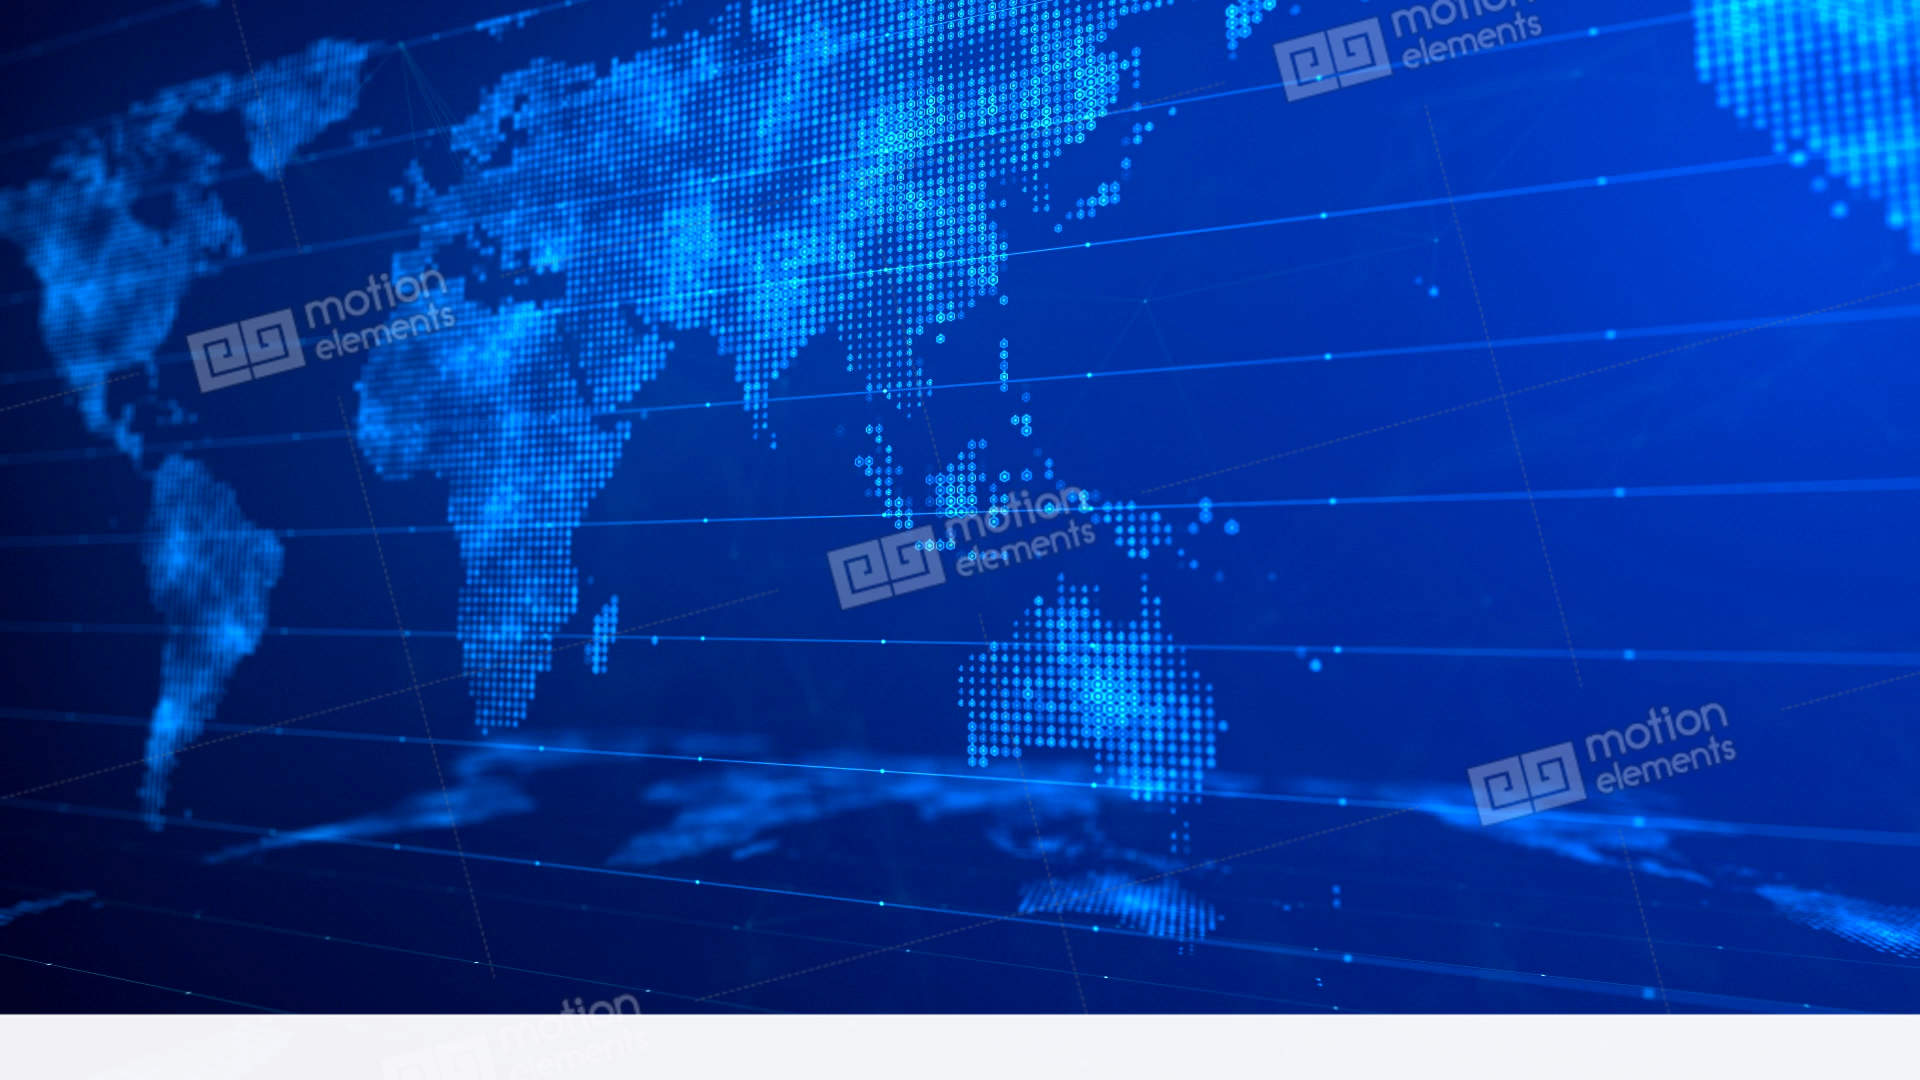 Digital world map background 01 stock animation 11465589 digital world map background 01 stock video footage gumiabroncs Choice Image